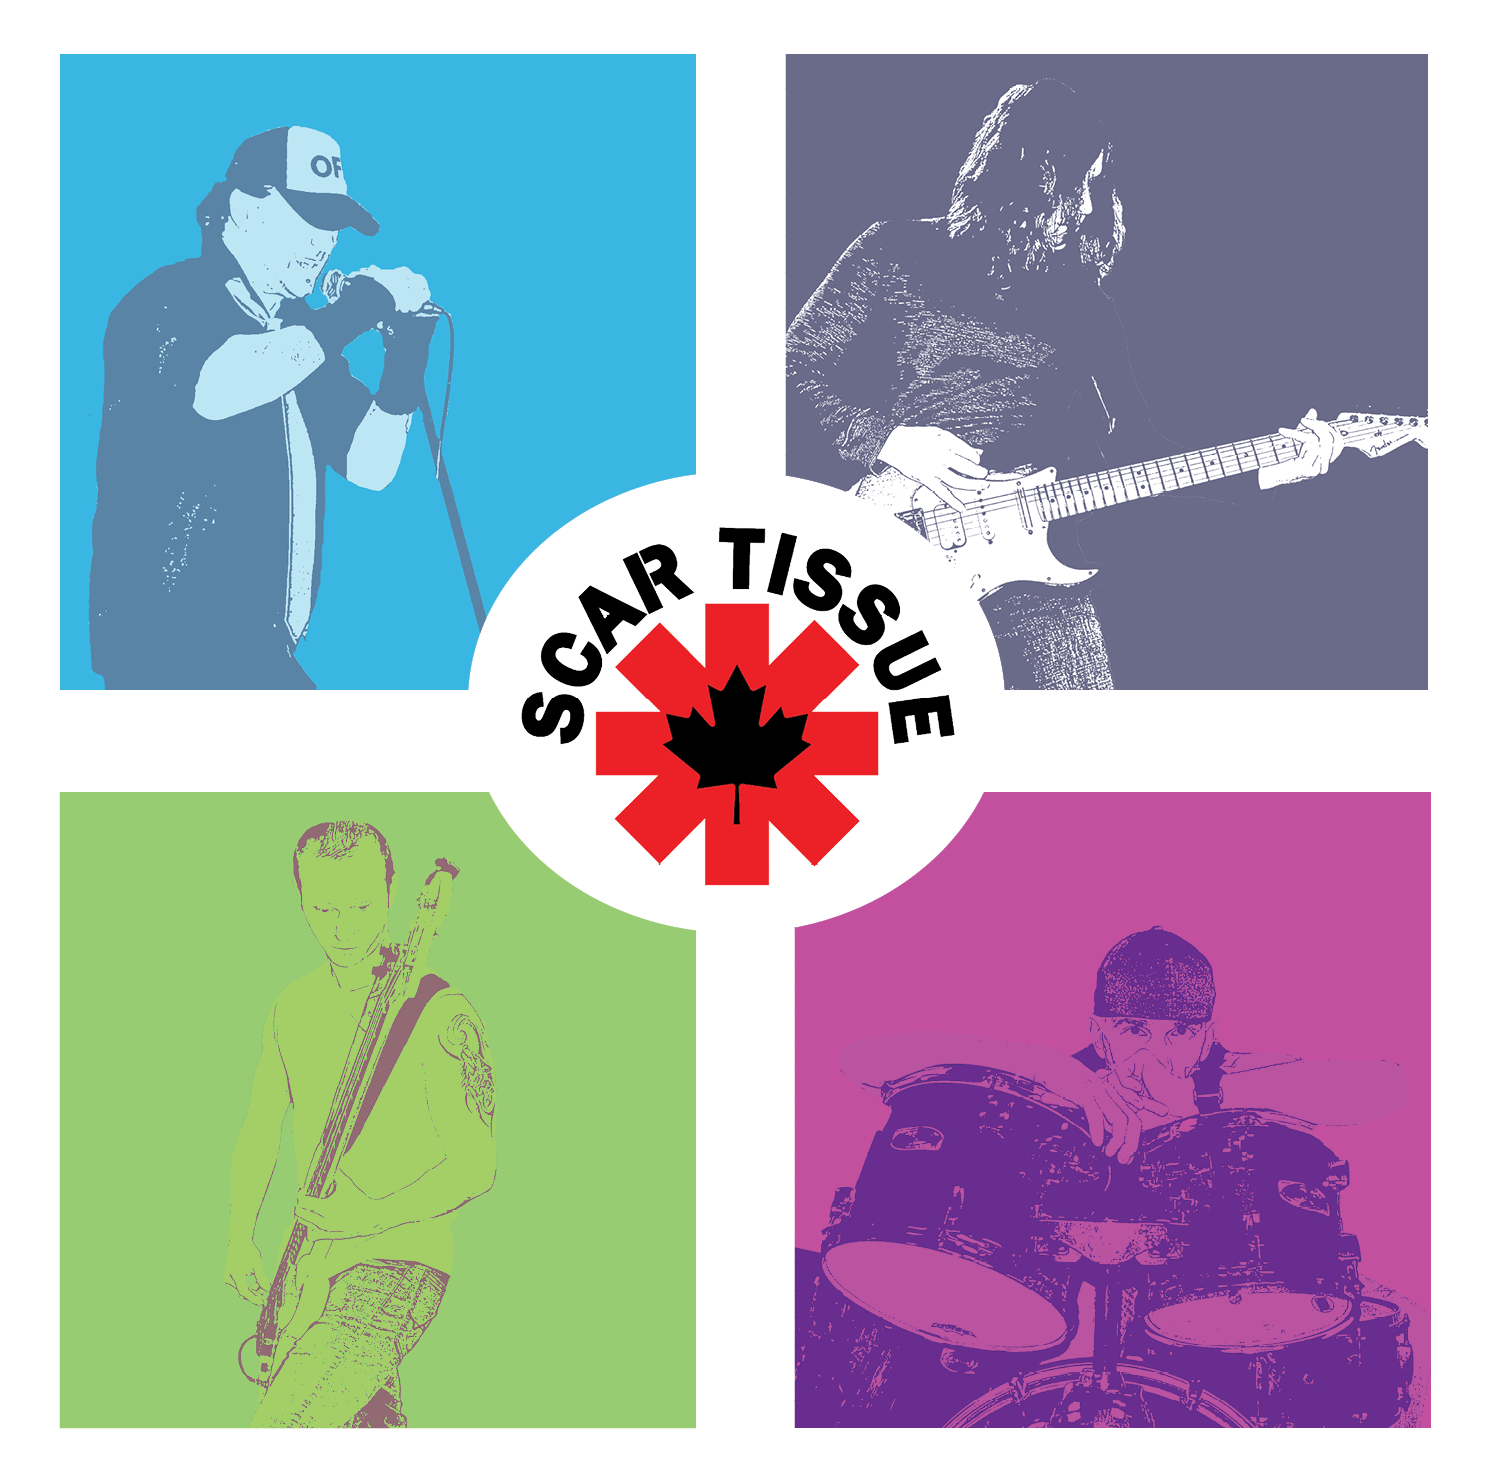 Scar Tissue - Western Canada's Premiere RHCP Tribute Band - default icon